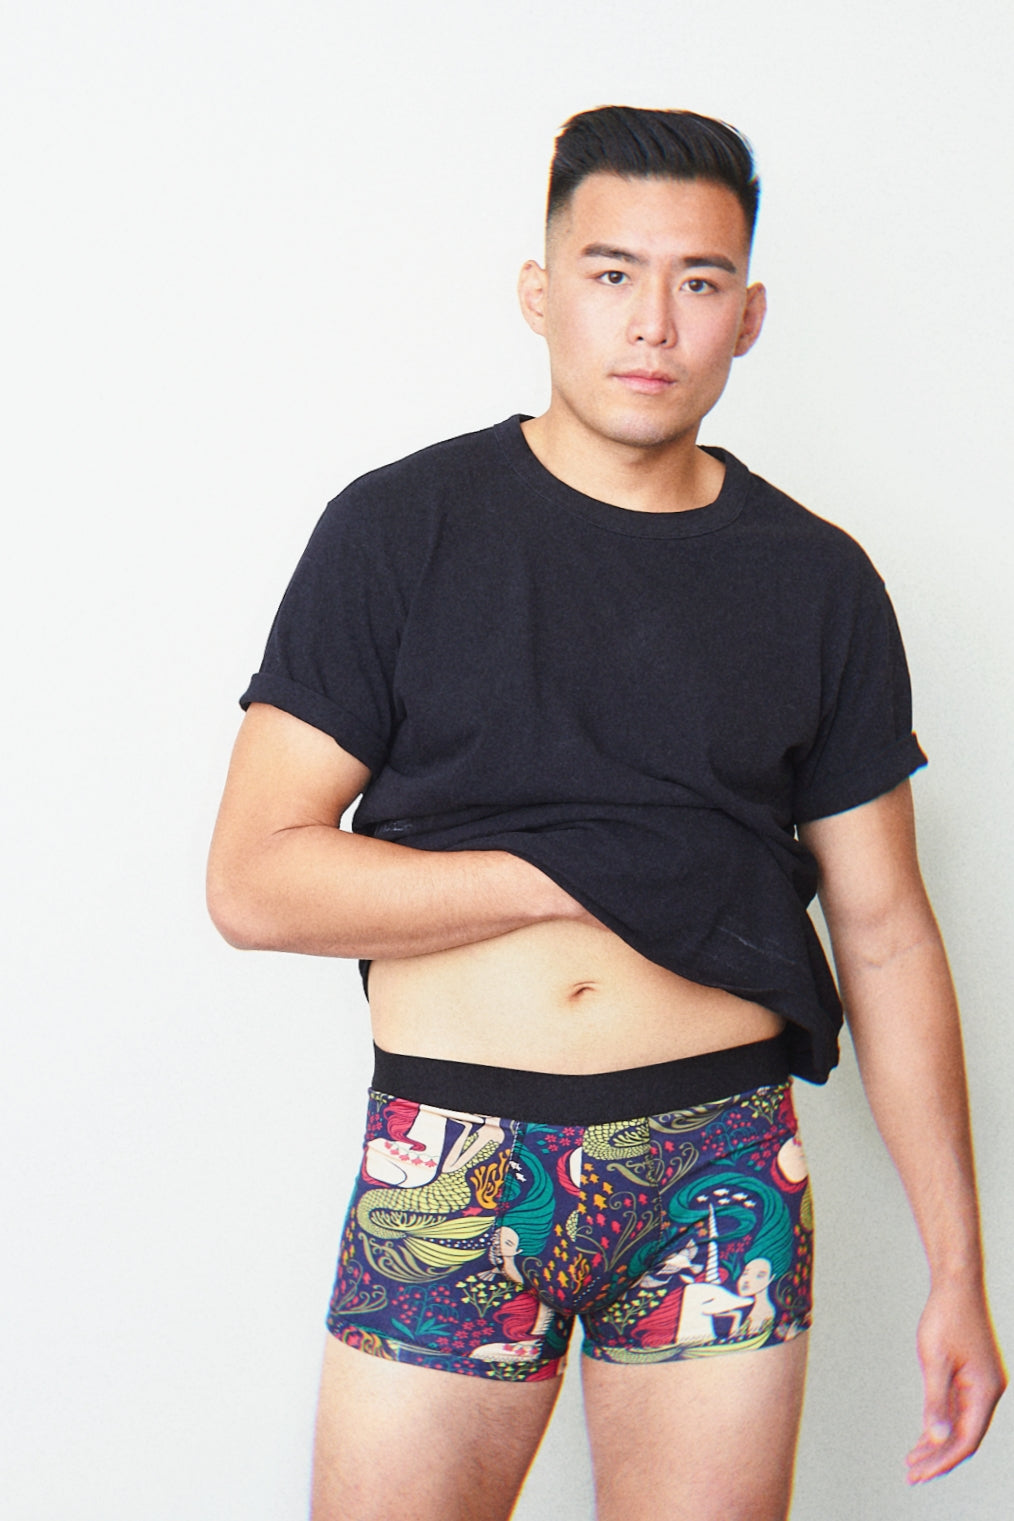 Mermaid and Unicorn Boxer Briefs Organic cotton - EmMeMa | Buy comfy boxer briefs